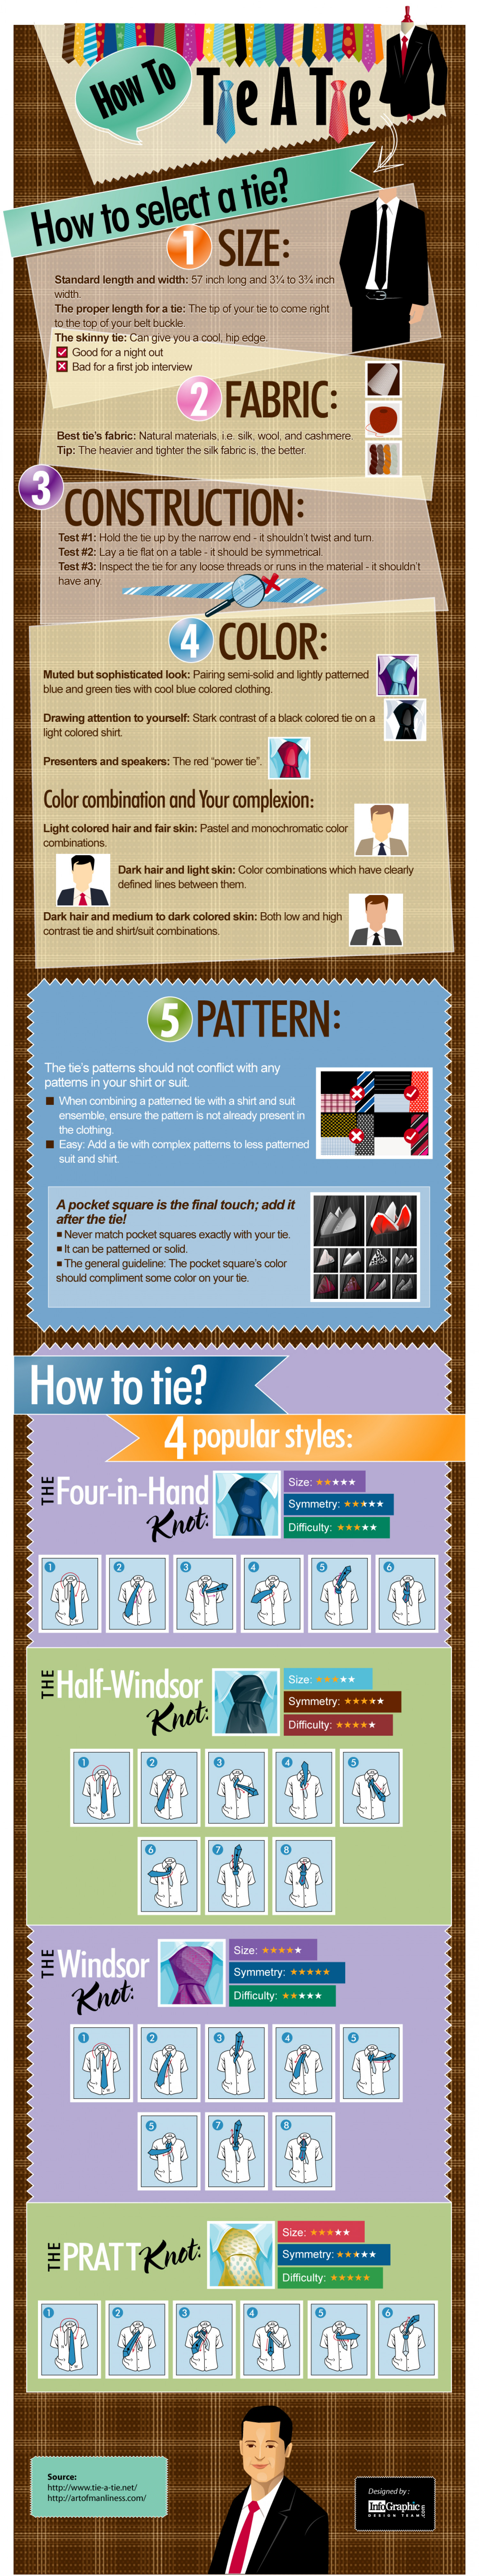 How to tie a tie visual how to tie a tie infographic ccuart Image collections